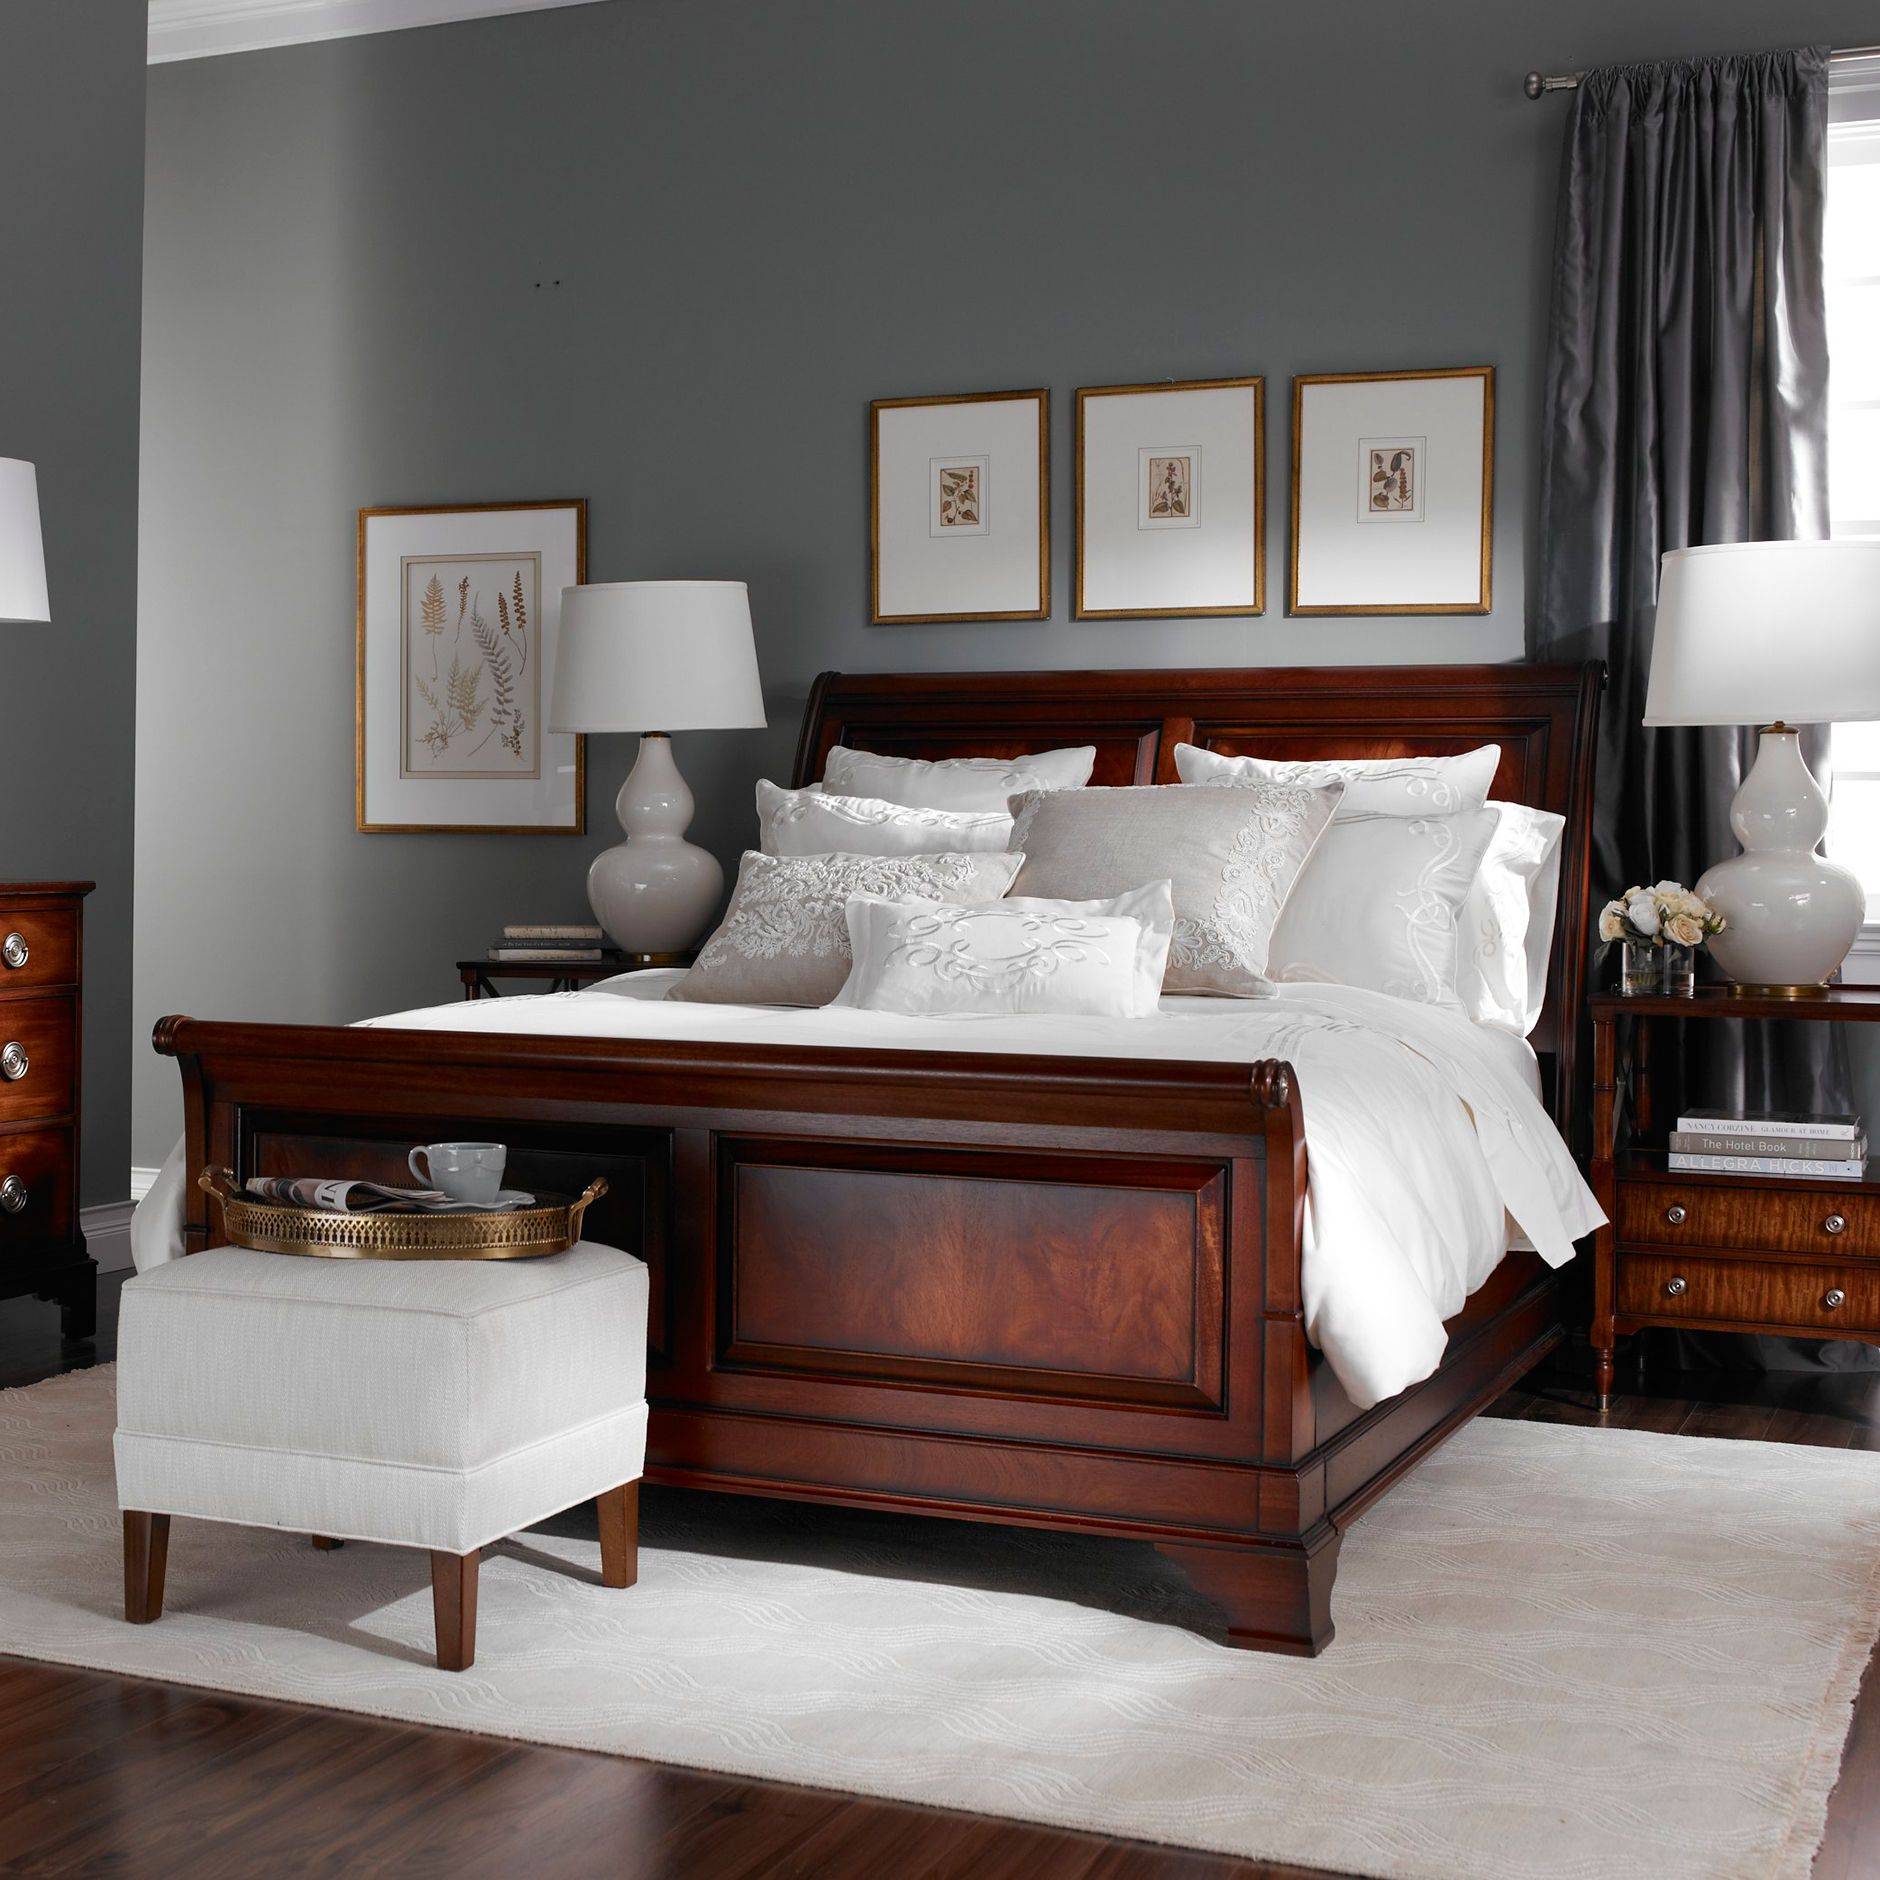 Shop Artwork  Décor  Brown furniture bedroom, Master bedrooms